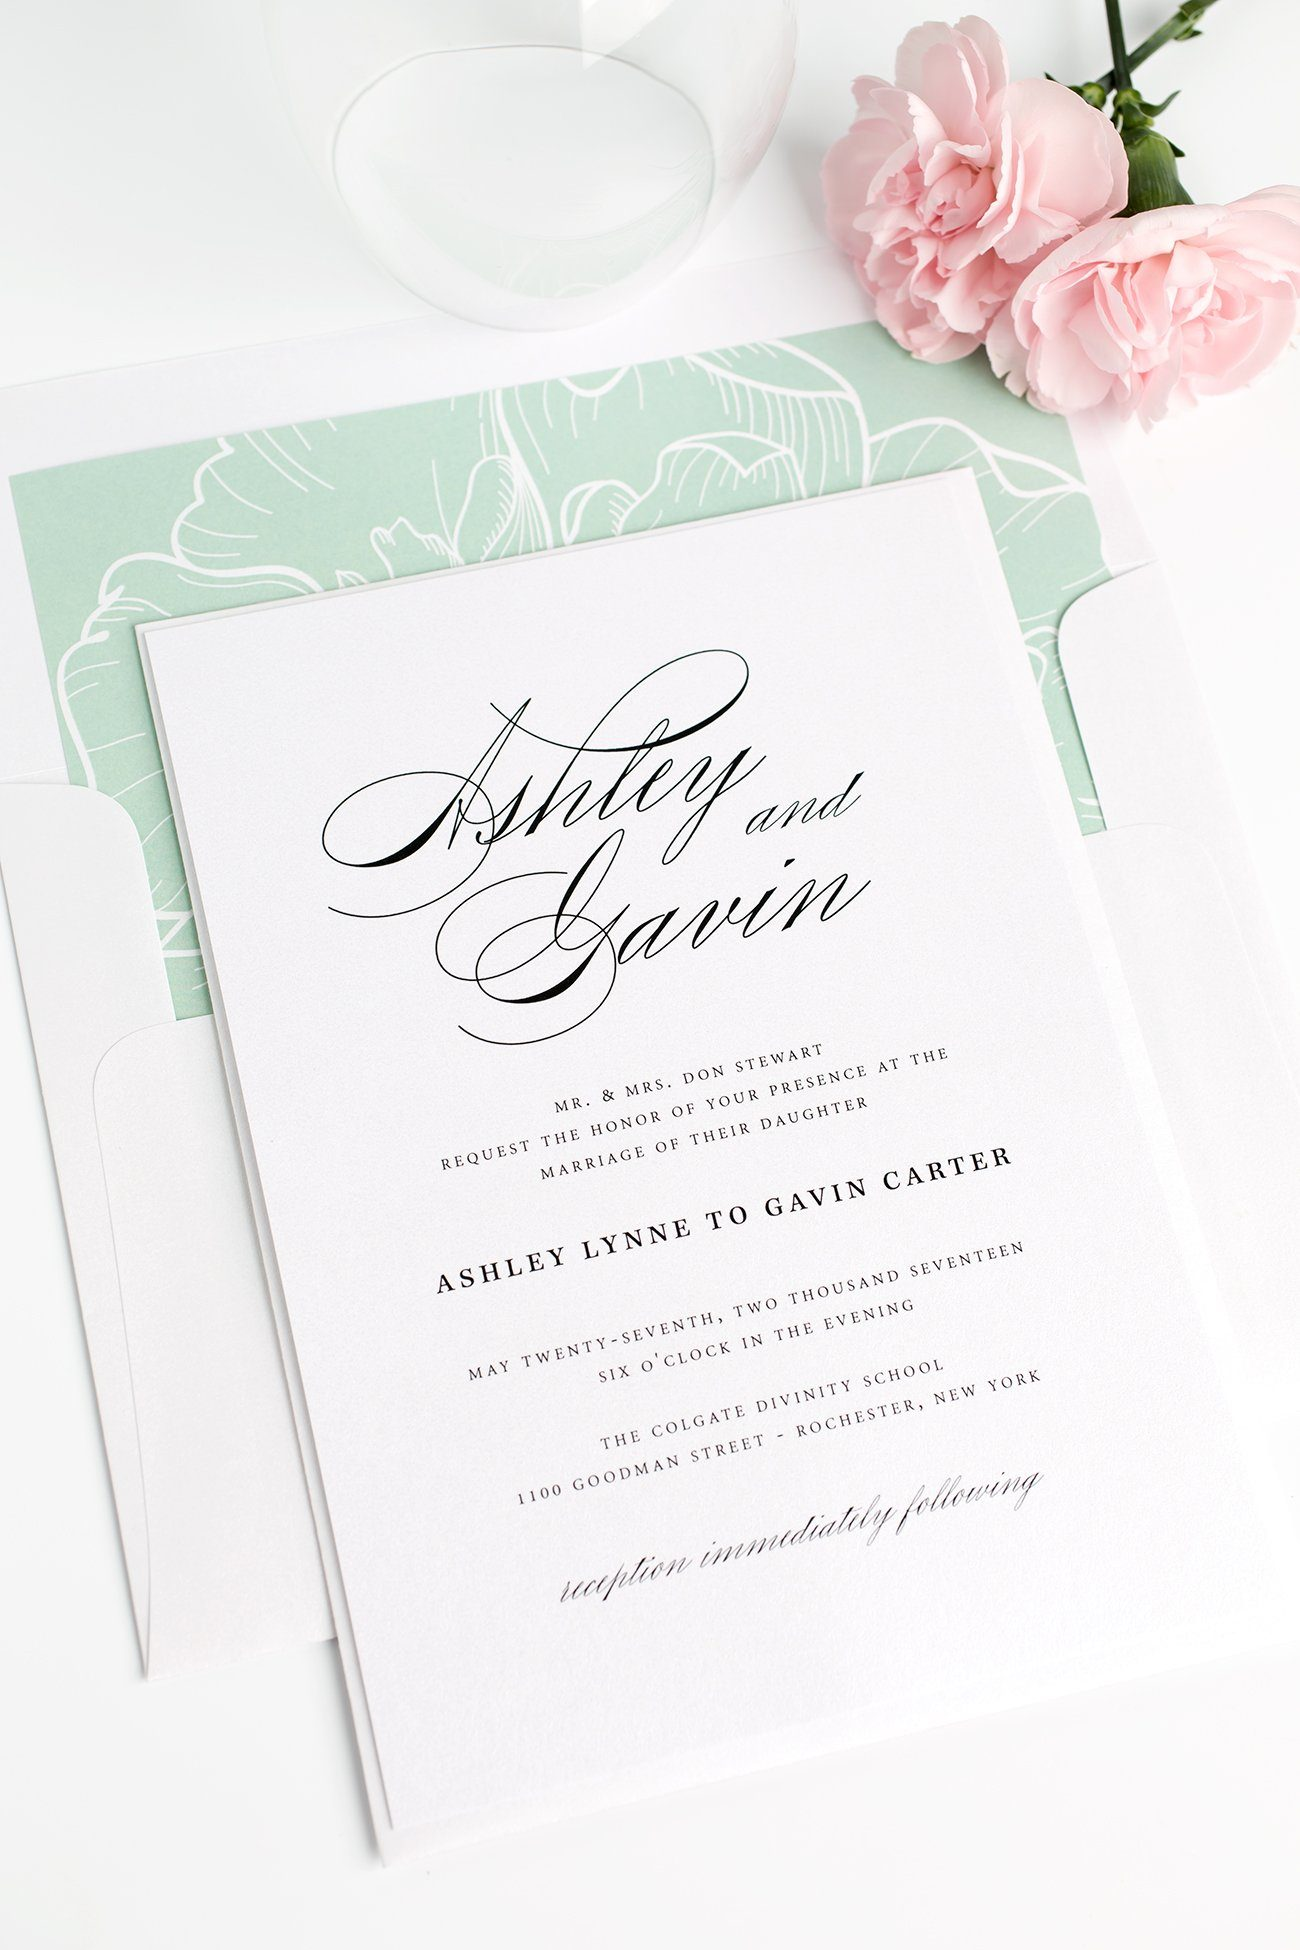 Timeless Script Wedding Invitations in Soft Jade with a Floral Envelope Liner